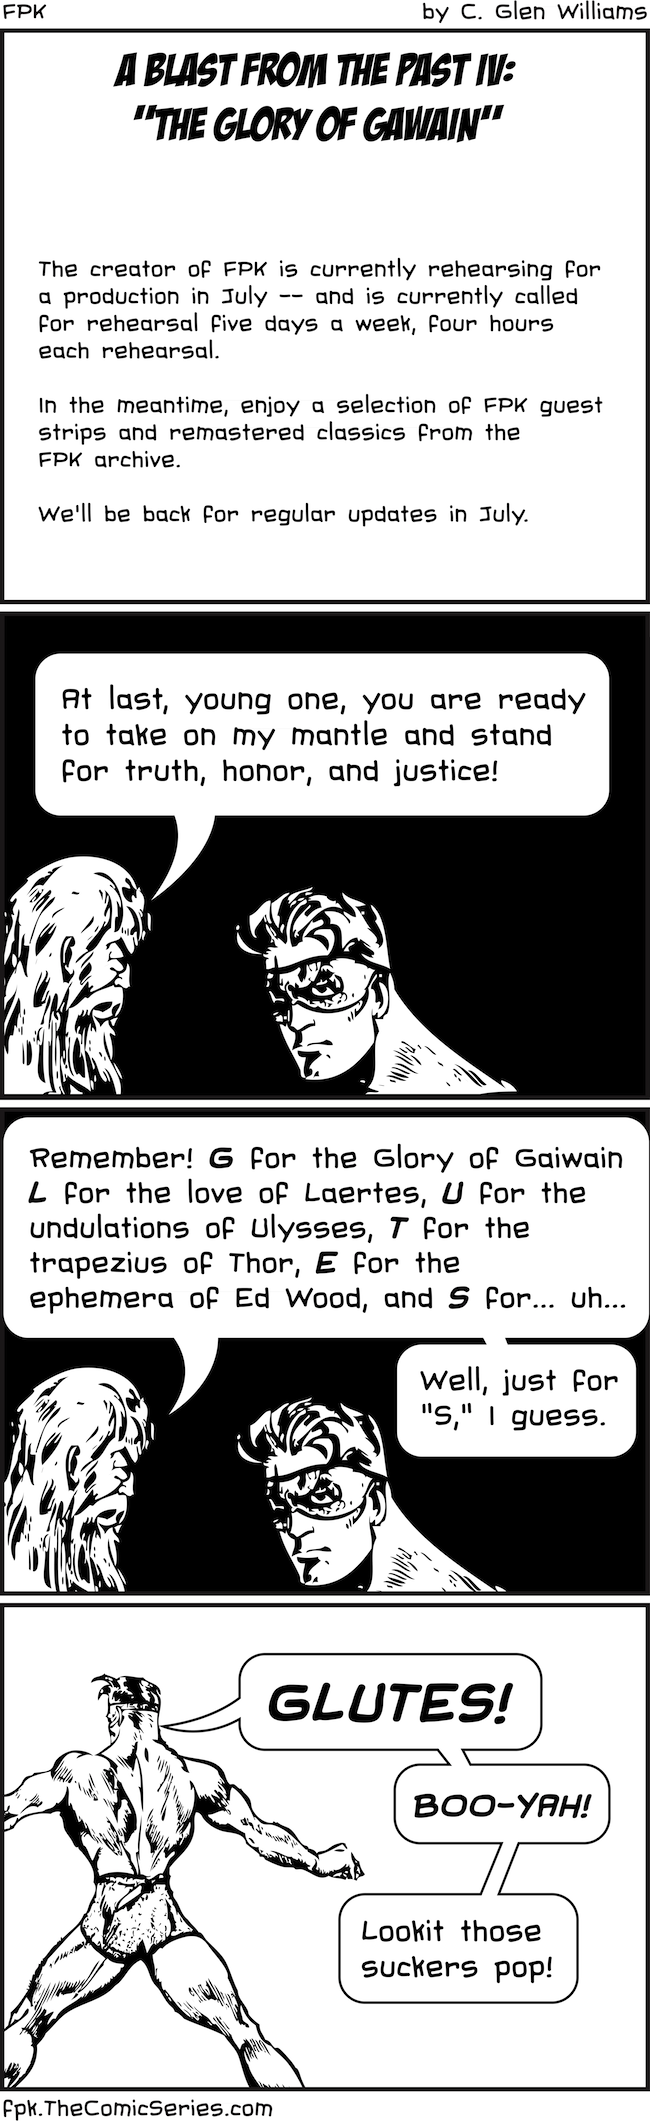 Blast From the Past IV: The Glory of Gawain